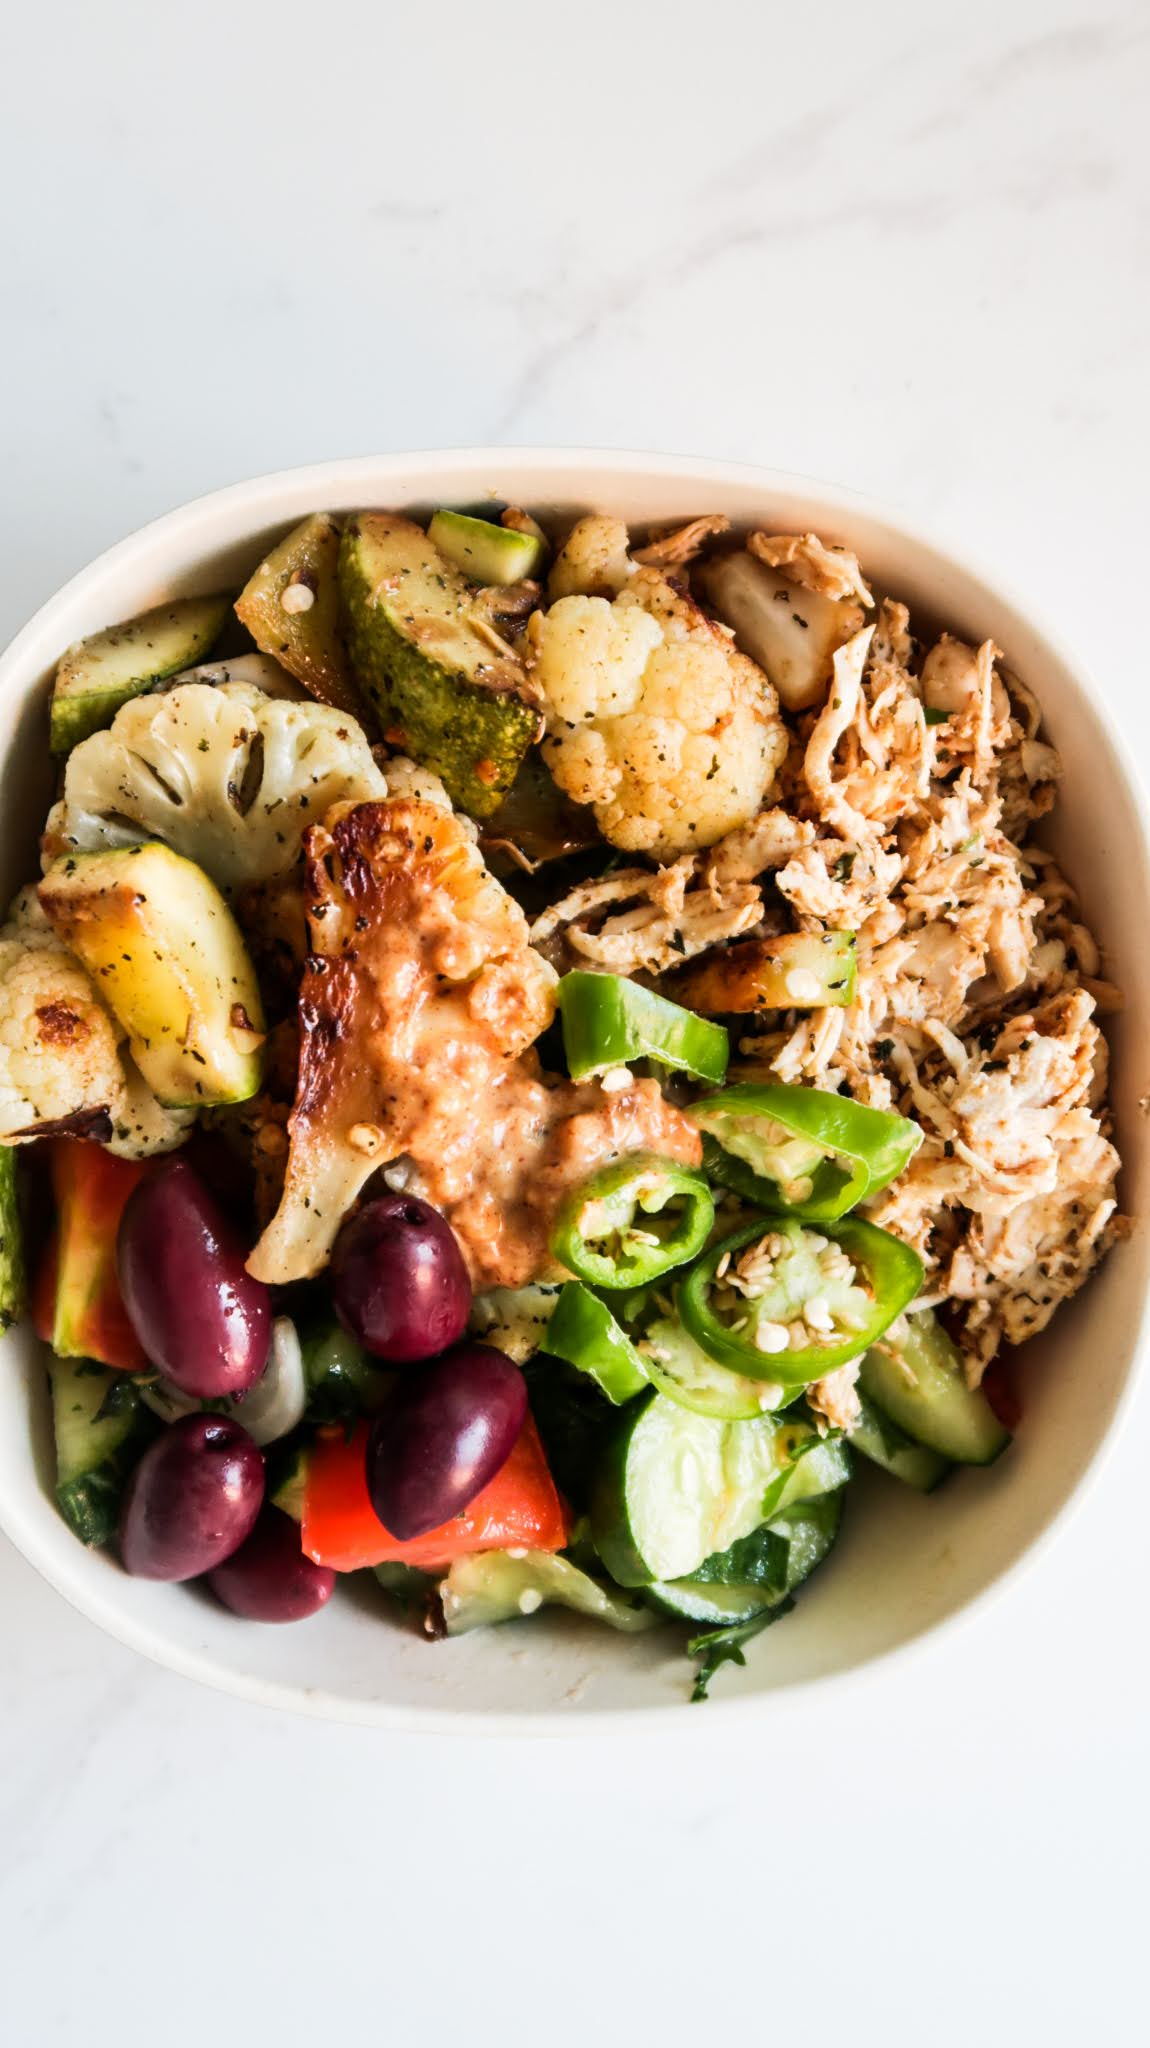 Looking for some new healthy dinner ideas to help you eat clean and reach your health and fitness goals? Try these healthy shredded chicken bowls recipe - it's spicy, delicious, easy to make, gluten free paleo and low carb! Filled with shredded chicken, roasted vegetables and a fresh salad, most of the things for this low carb dinner recipe you can meal prep for the week ahead.